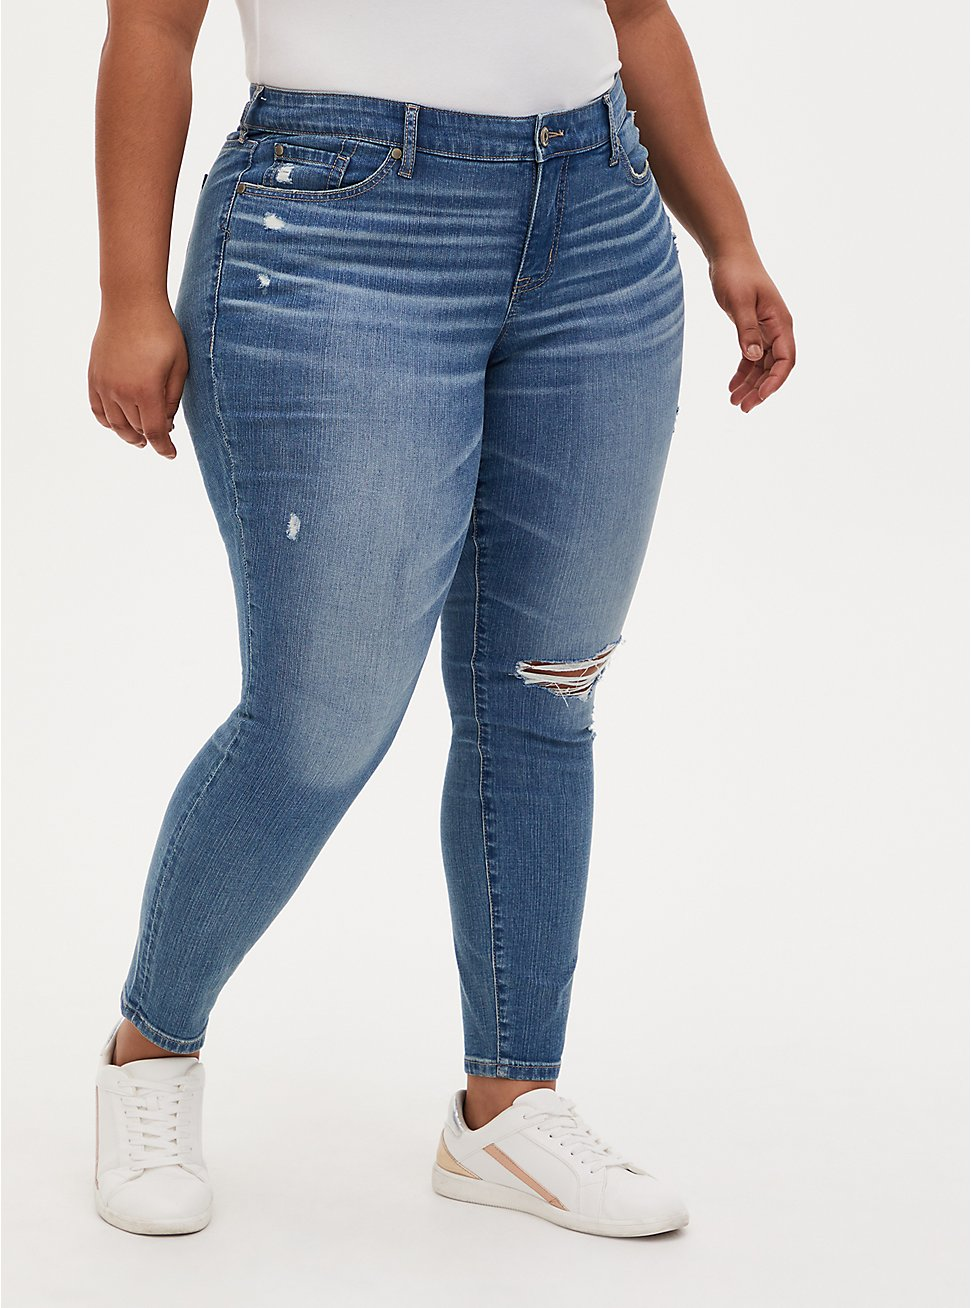 Mid Rise Skinny Jean - Vintage Stretch Medium Wash, KARMA, hi-res